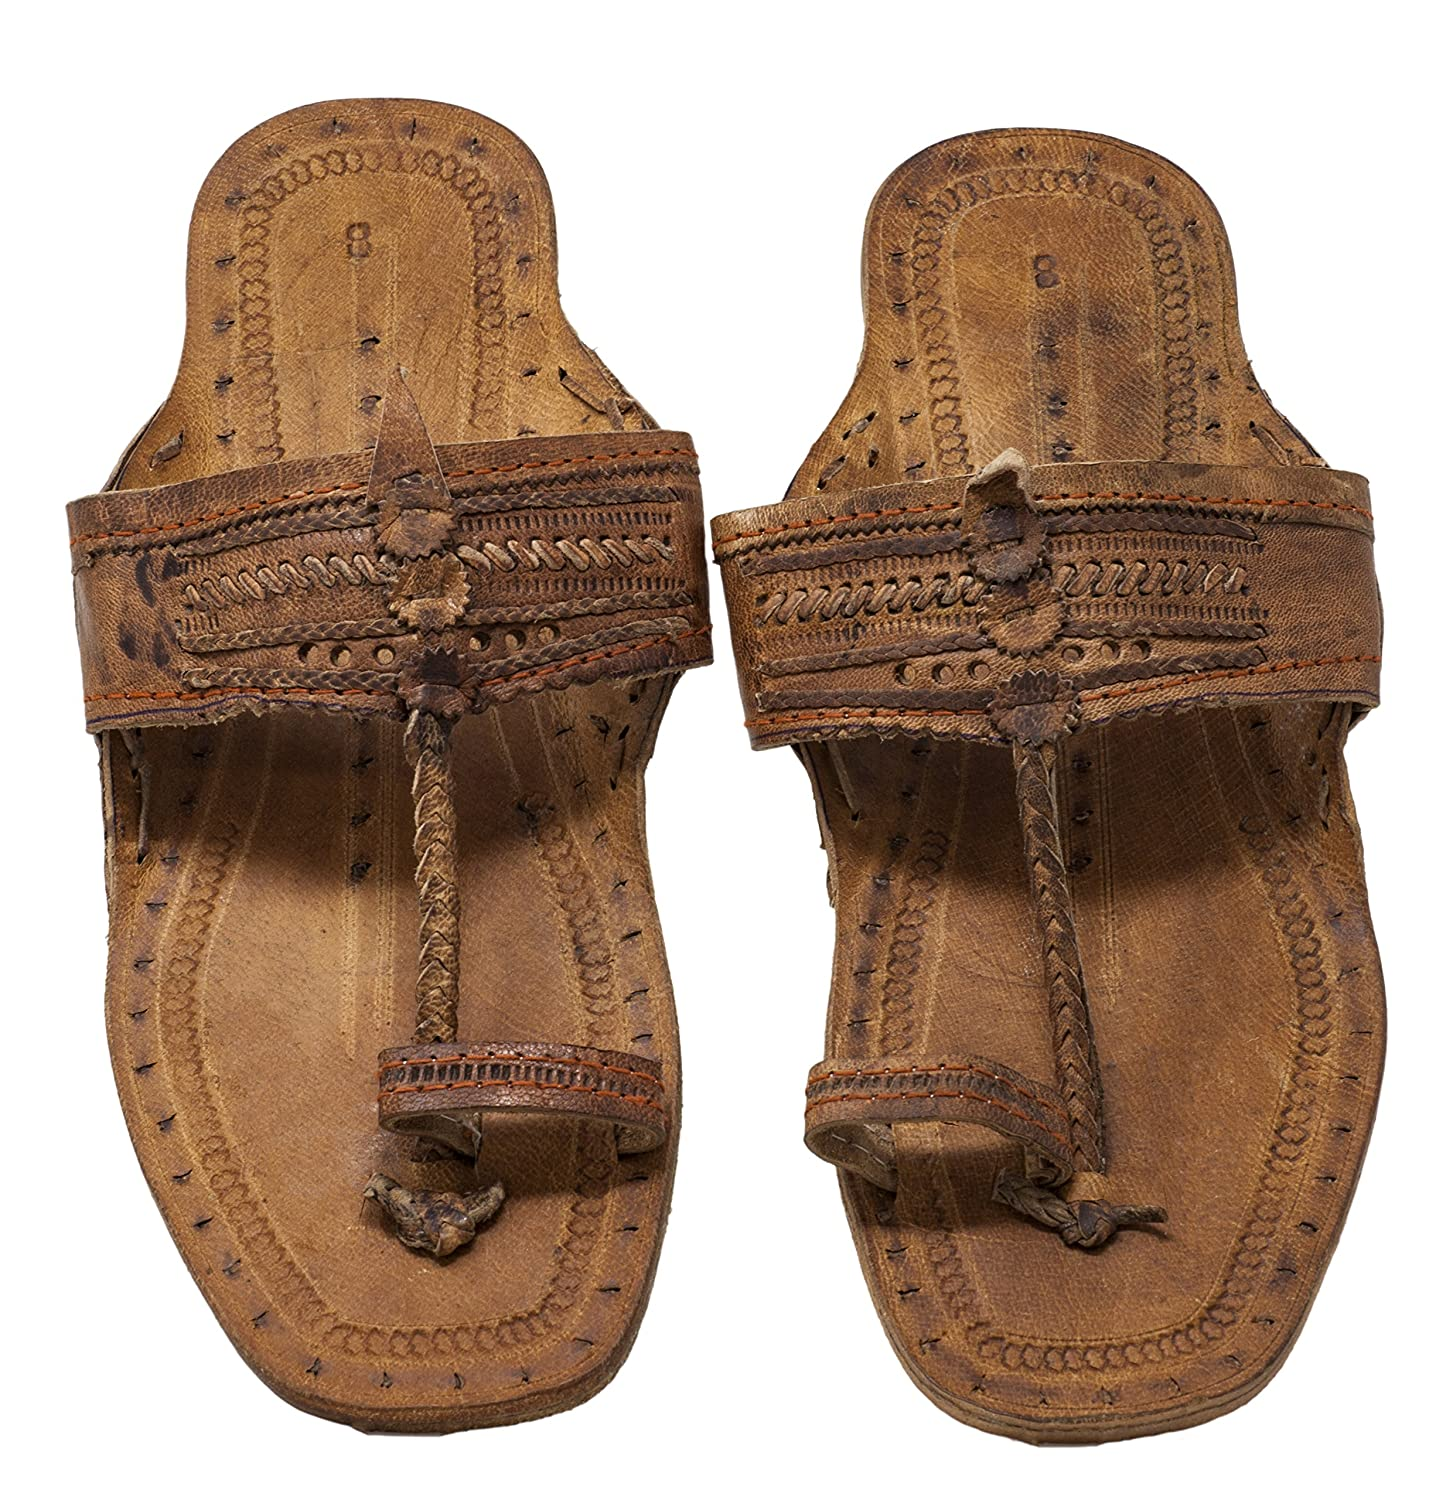 Vintage Sandals | Wedges, Espadrilles – 30s, 40s, 50s, 60s, 70s Funny Guy Mugs Unisex Hippie Indian Water Buffalo Jesus Sandals $22.98 AT vintagedancer.com